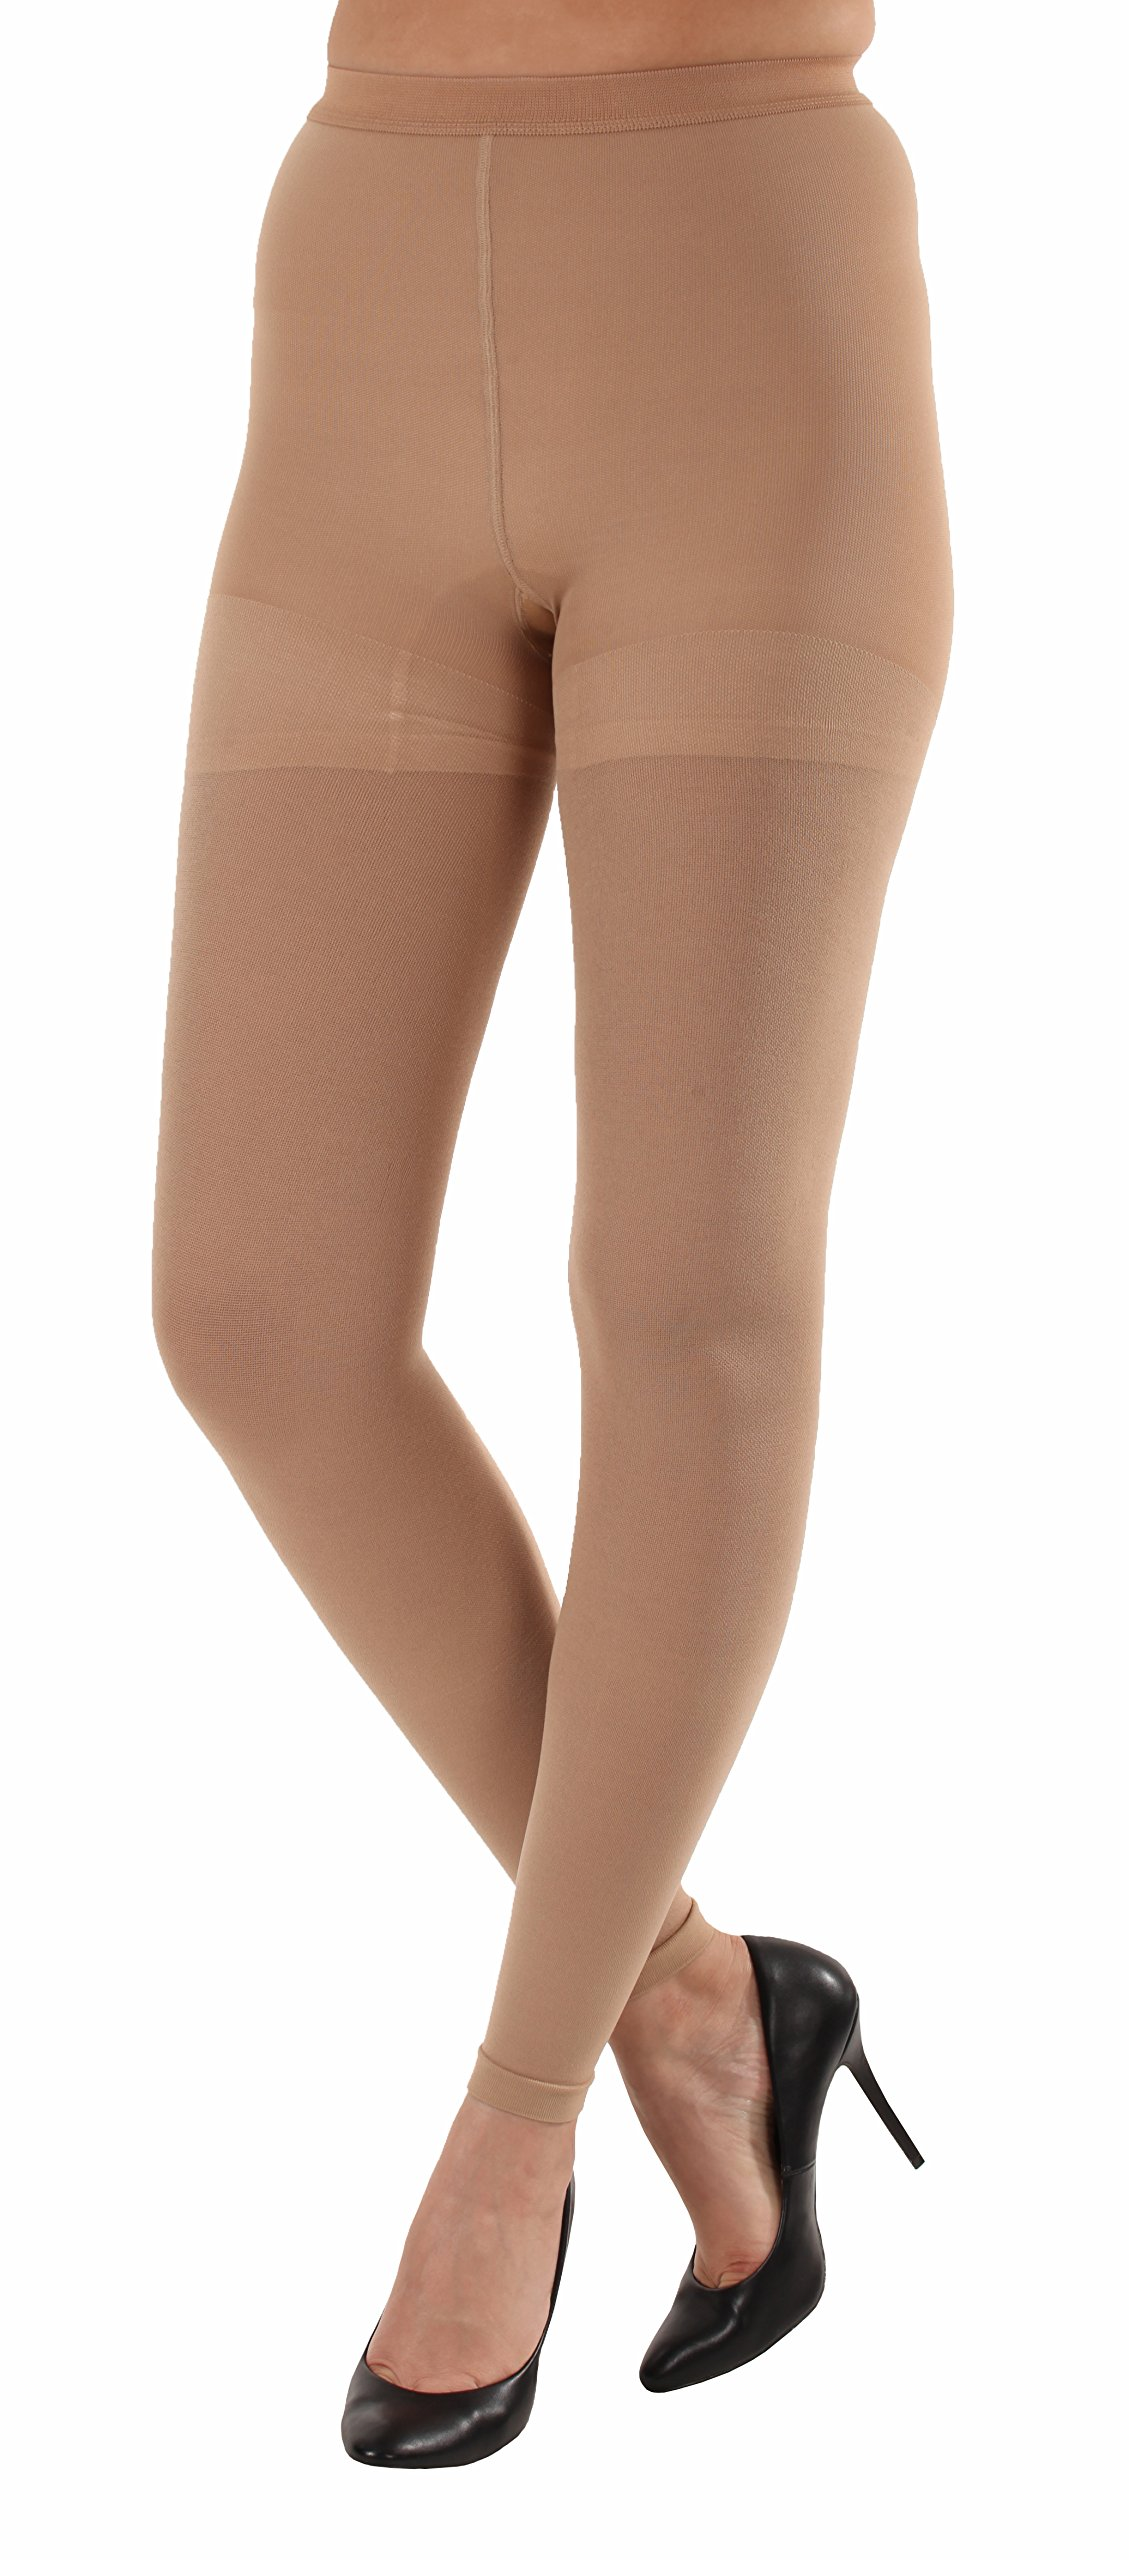 Graduated Women's Compression Stockings Leggings with Control Top - Firm Graduated Support 20-30mmHg, Color Beige, Size Small, Absolute Support SKU: A717BE1